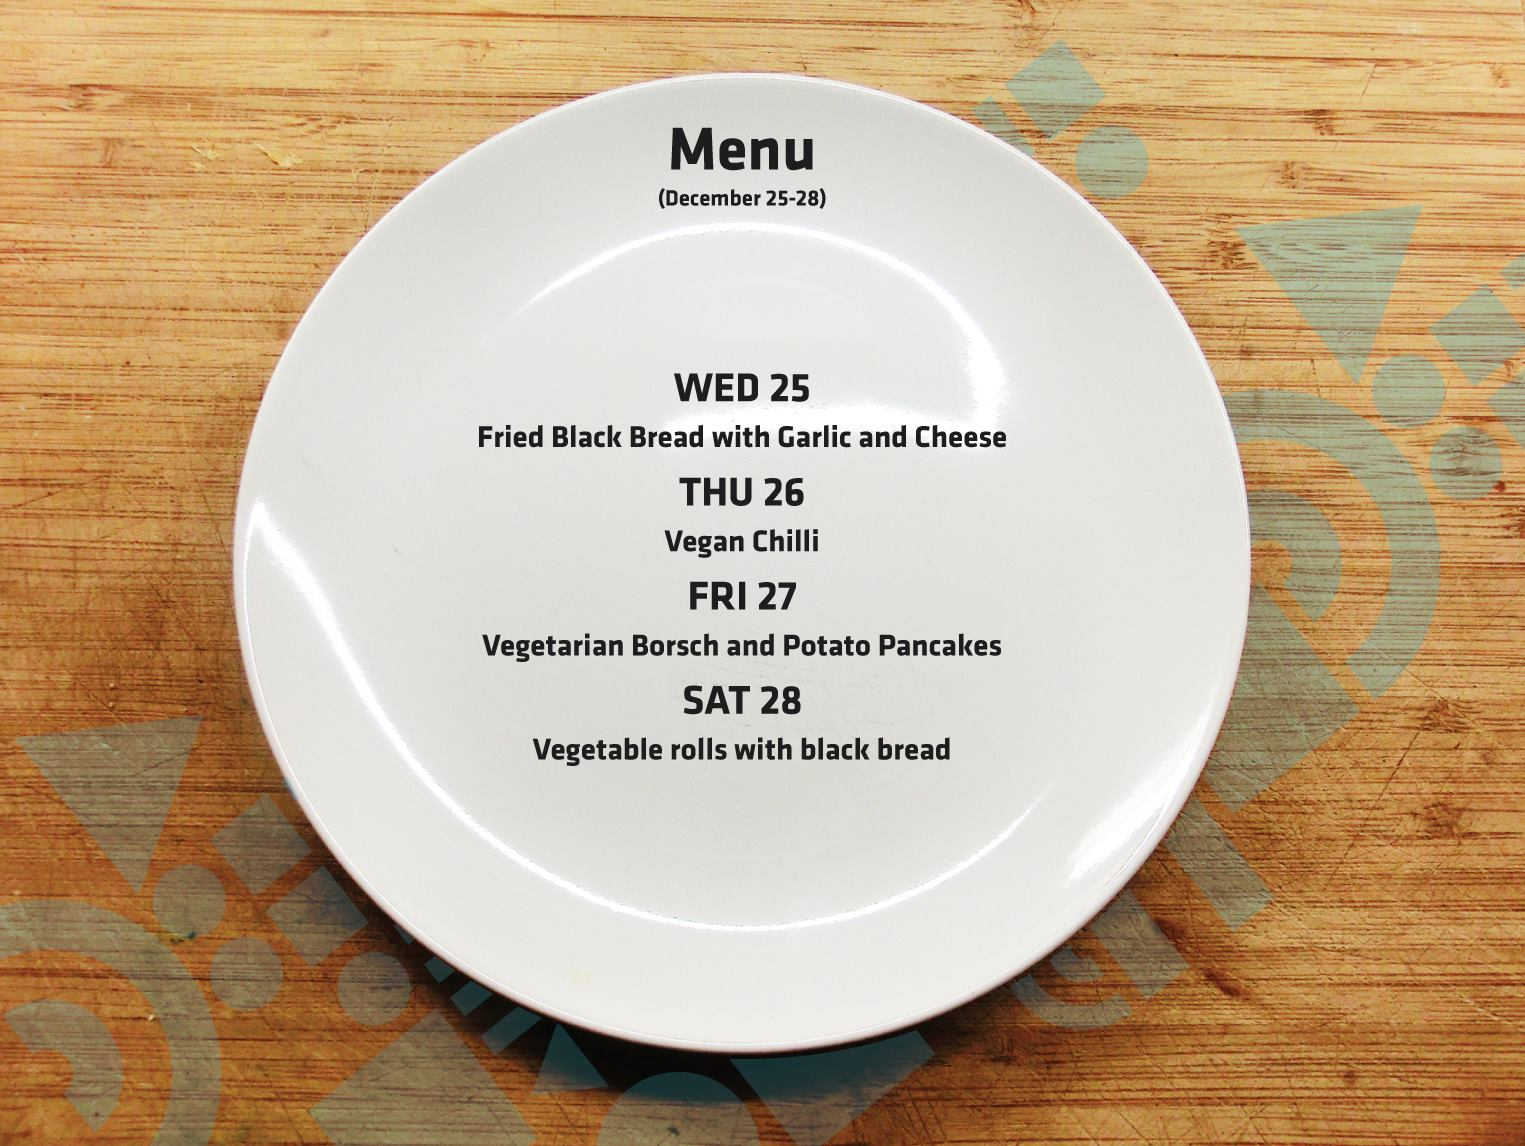 MENU: From 25th until December 28th